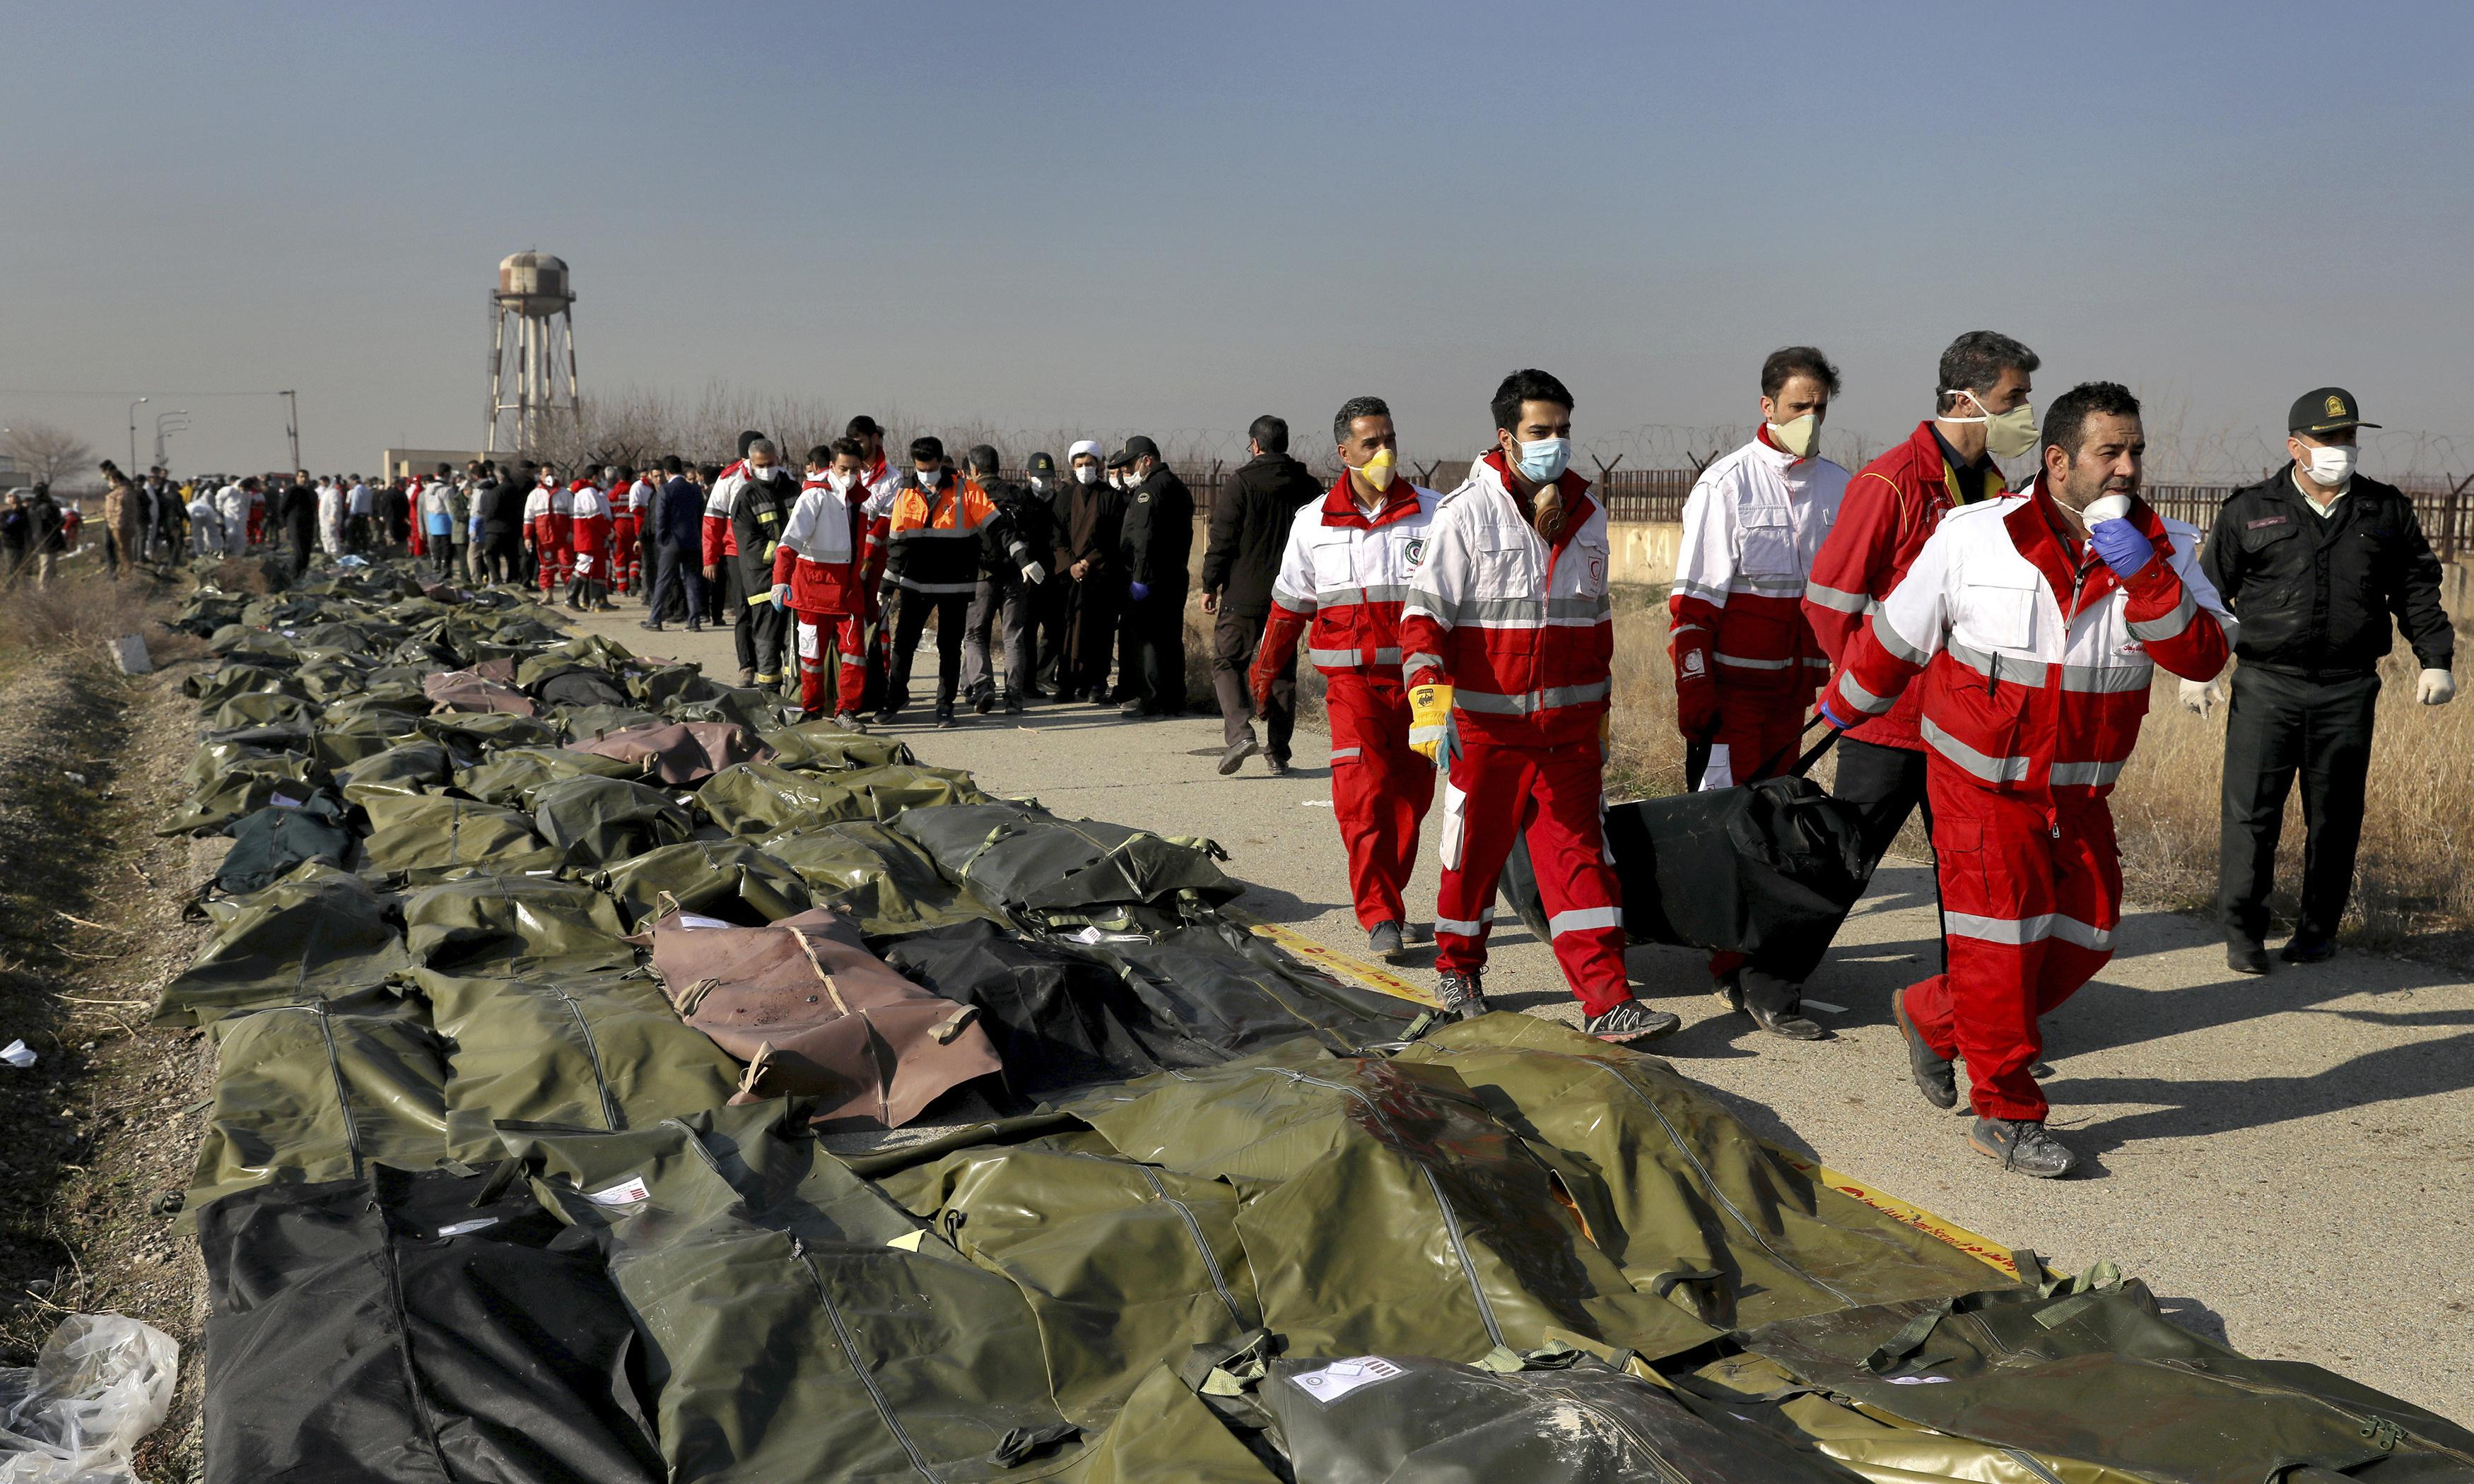 The downing of flight 752 in Iran is a tragedy of complacency